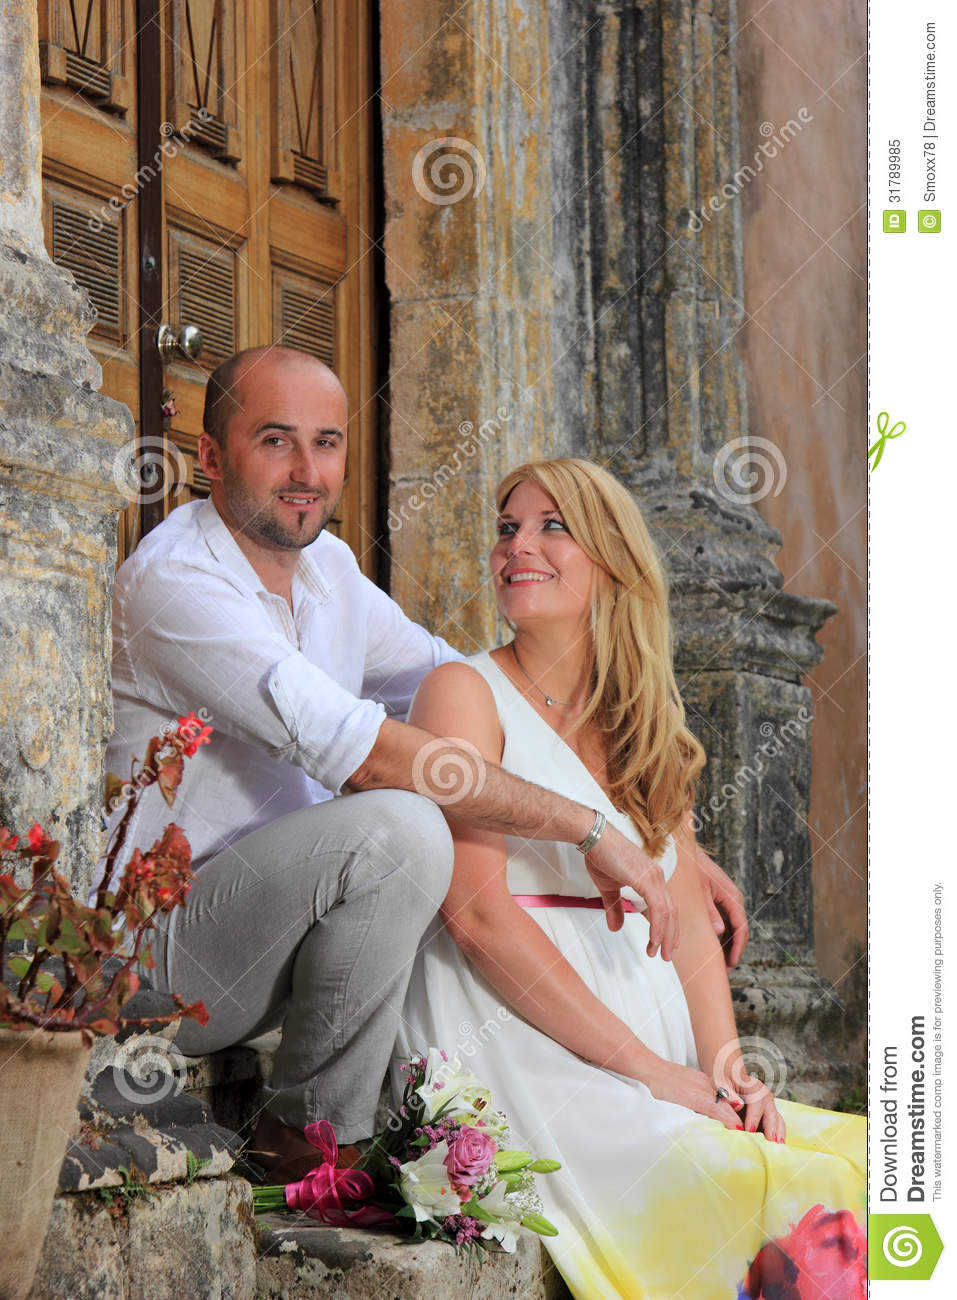 Couple In Love Royalty Free Stock Photo - Image 31789985-6954